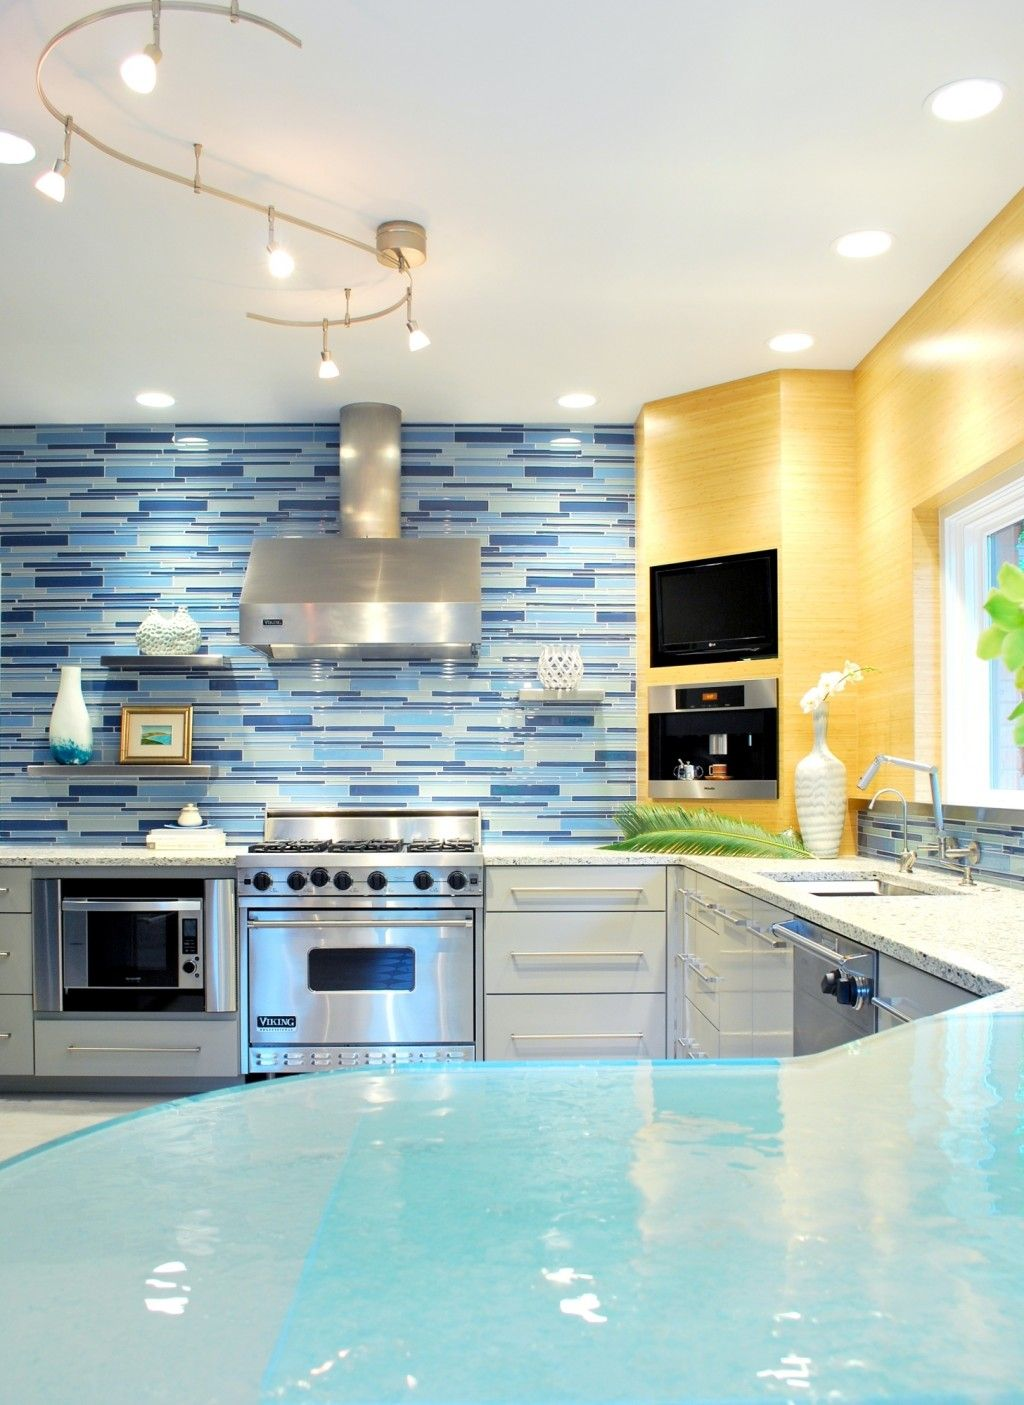 Kitchen teal white yellow kitchen decorations awesome blue backsplash recessed kitchen lighting yellow wall over